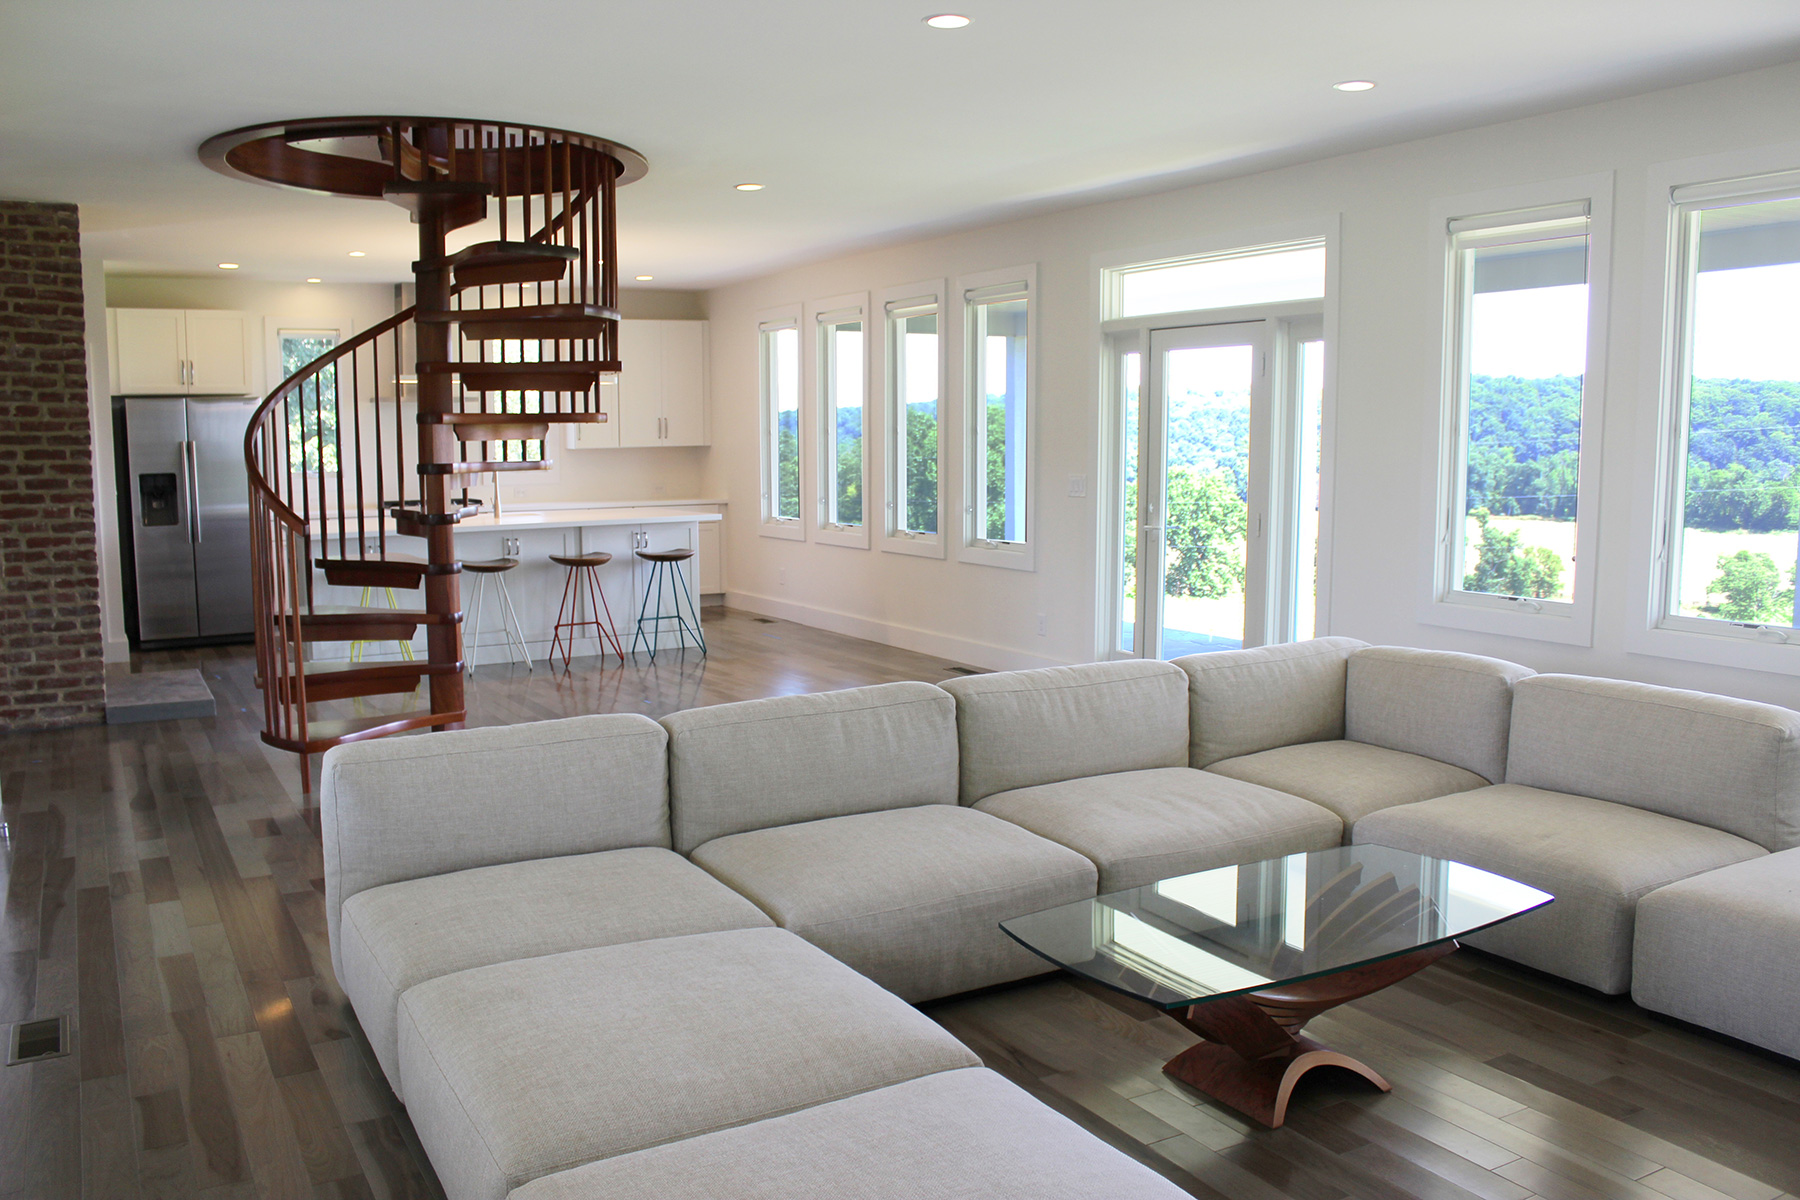 FINISHED LIVING ROOM WITH HANDMADE CUSTOM MAHOGANY SPIRAL STAIR.